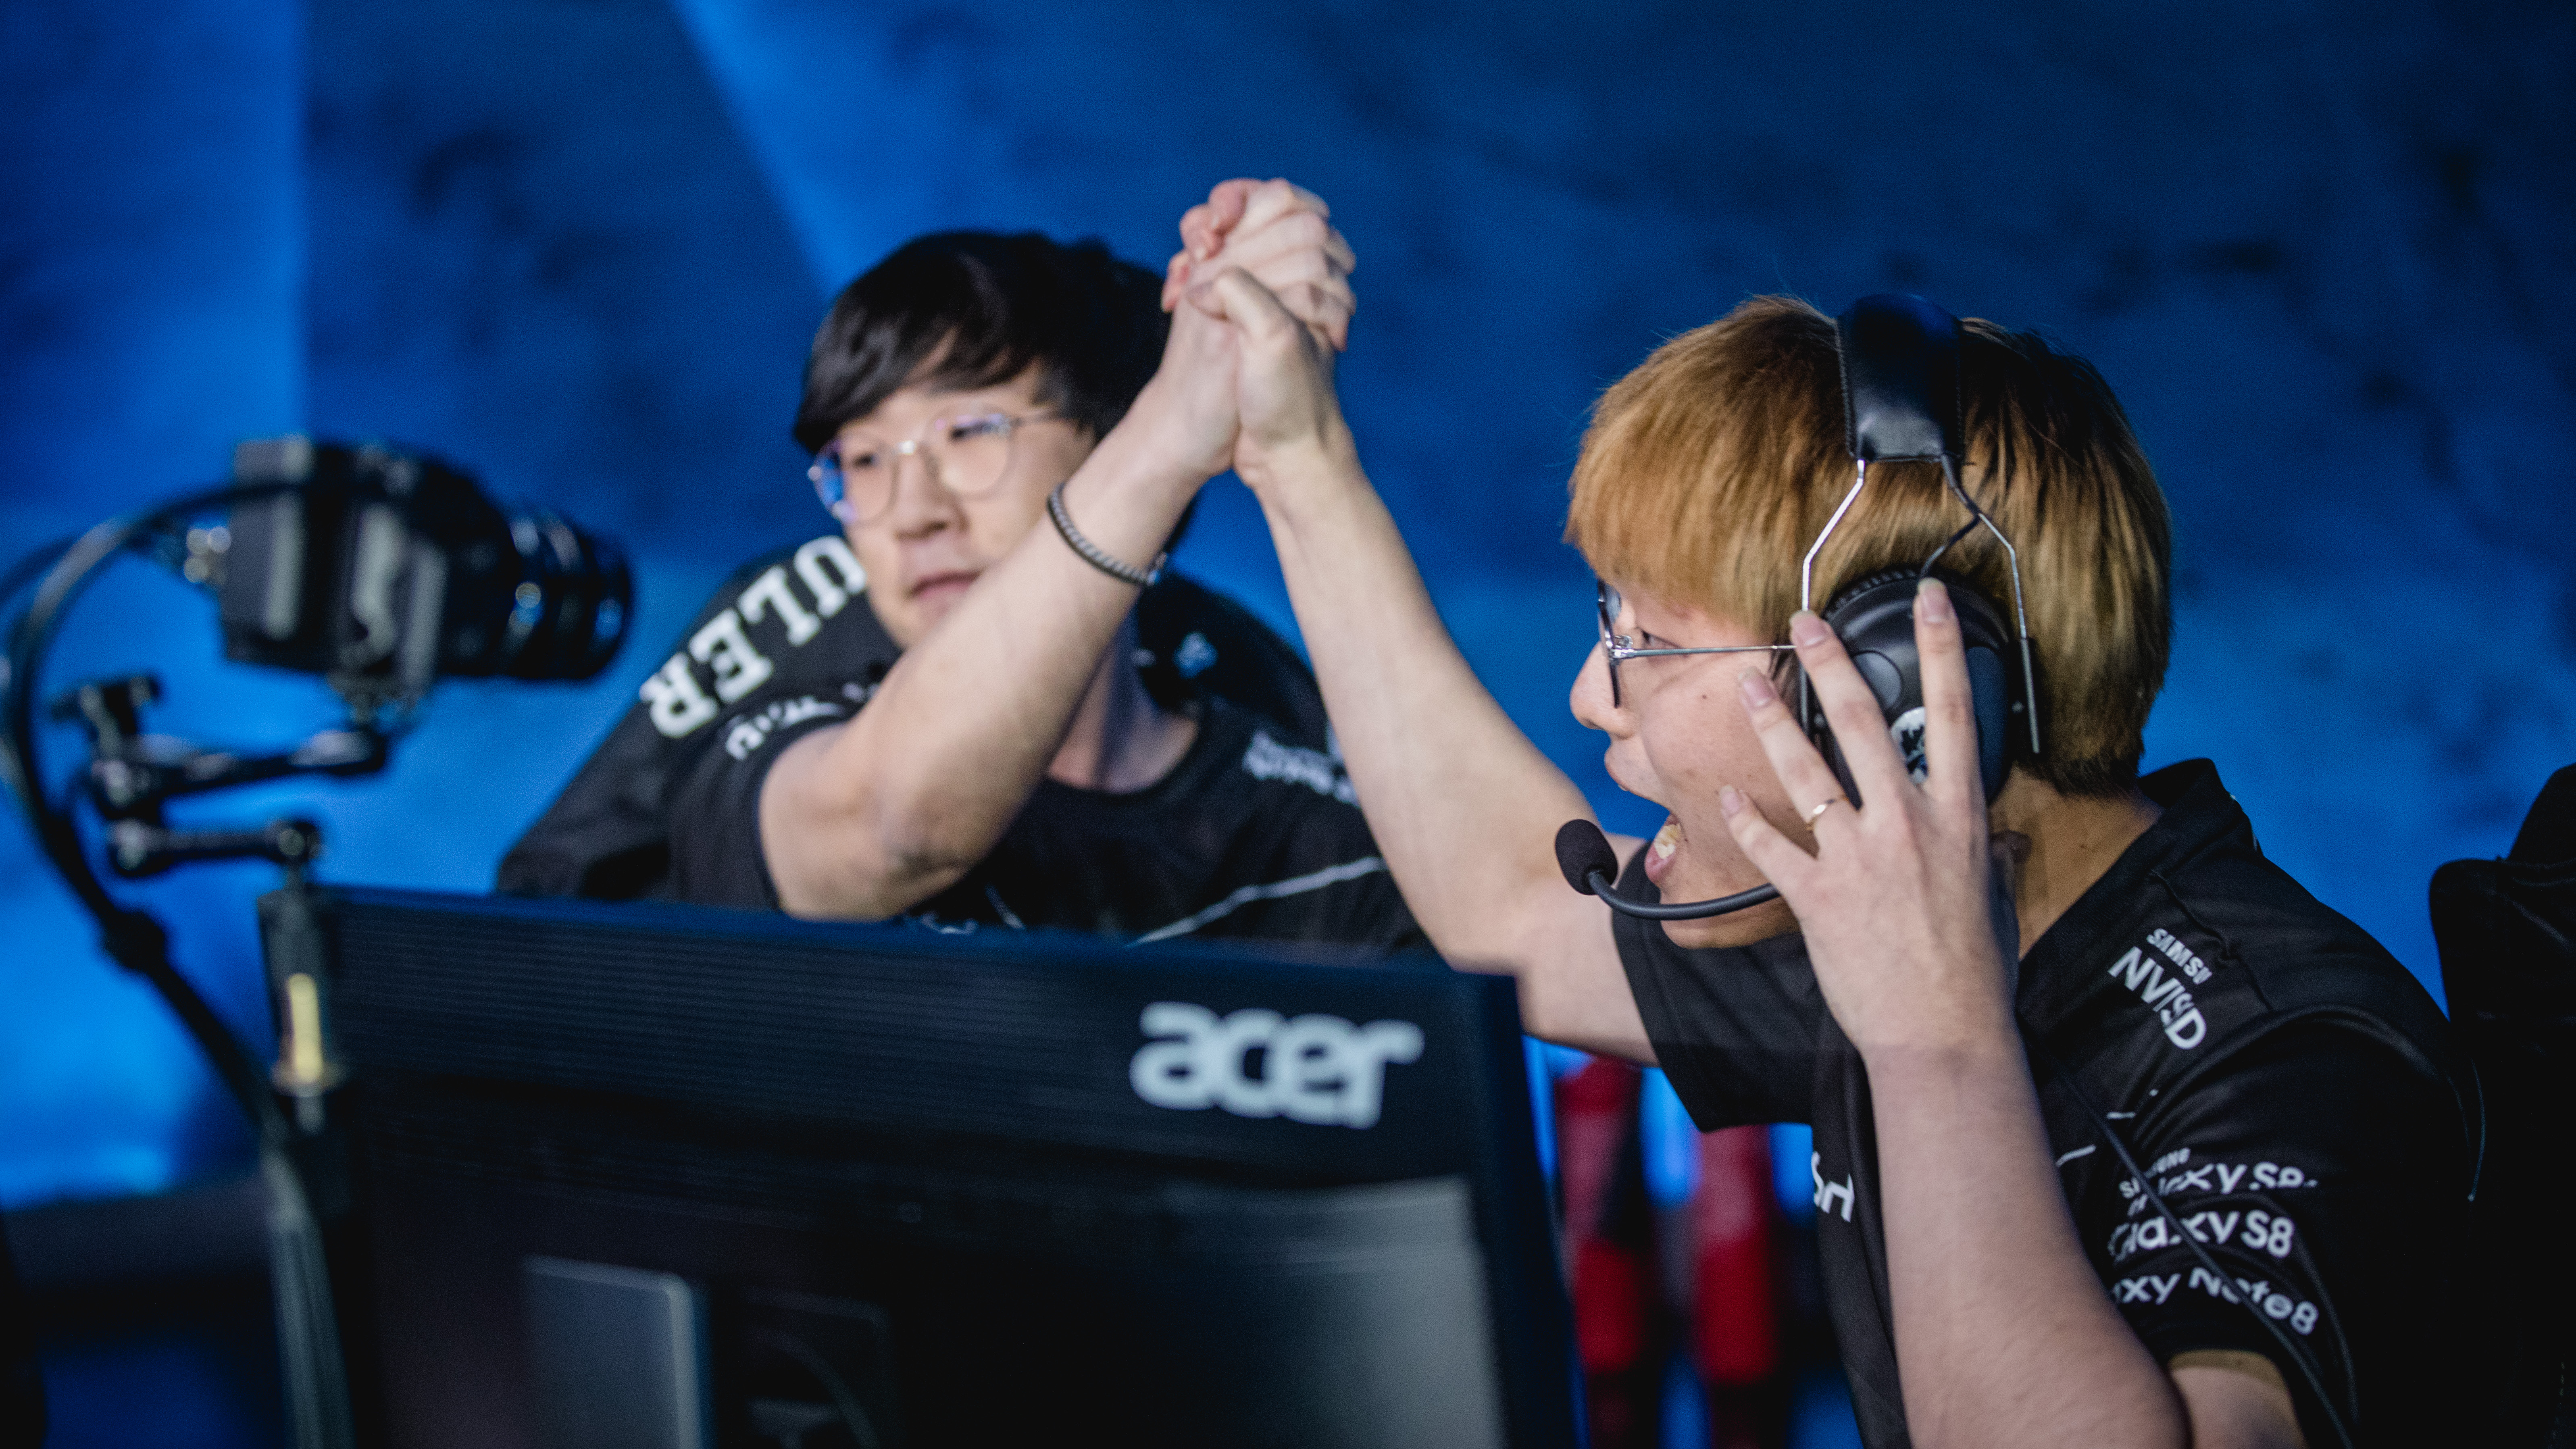 Two professional League players high fiving after a game